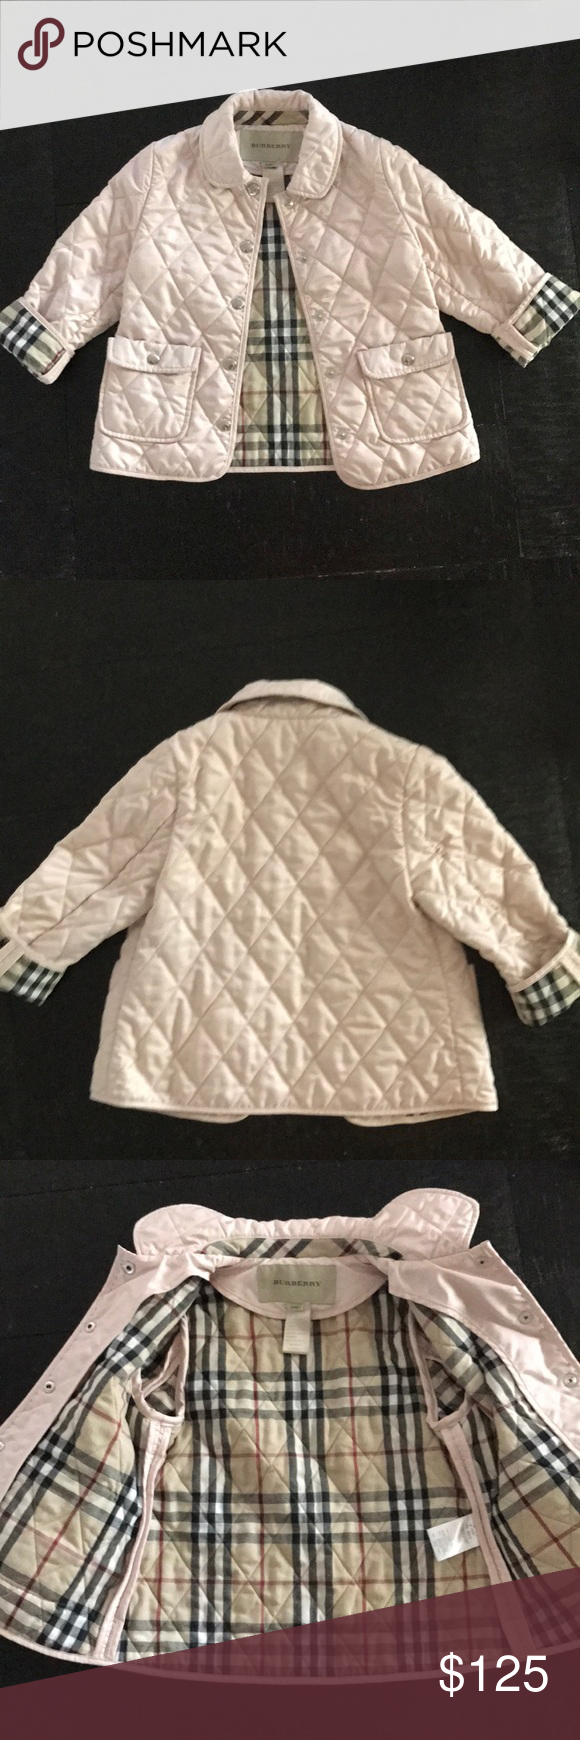 Burberry Quilted Nylon Jacket Girls Pinterest Burberry Quilted